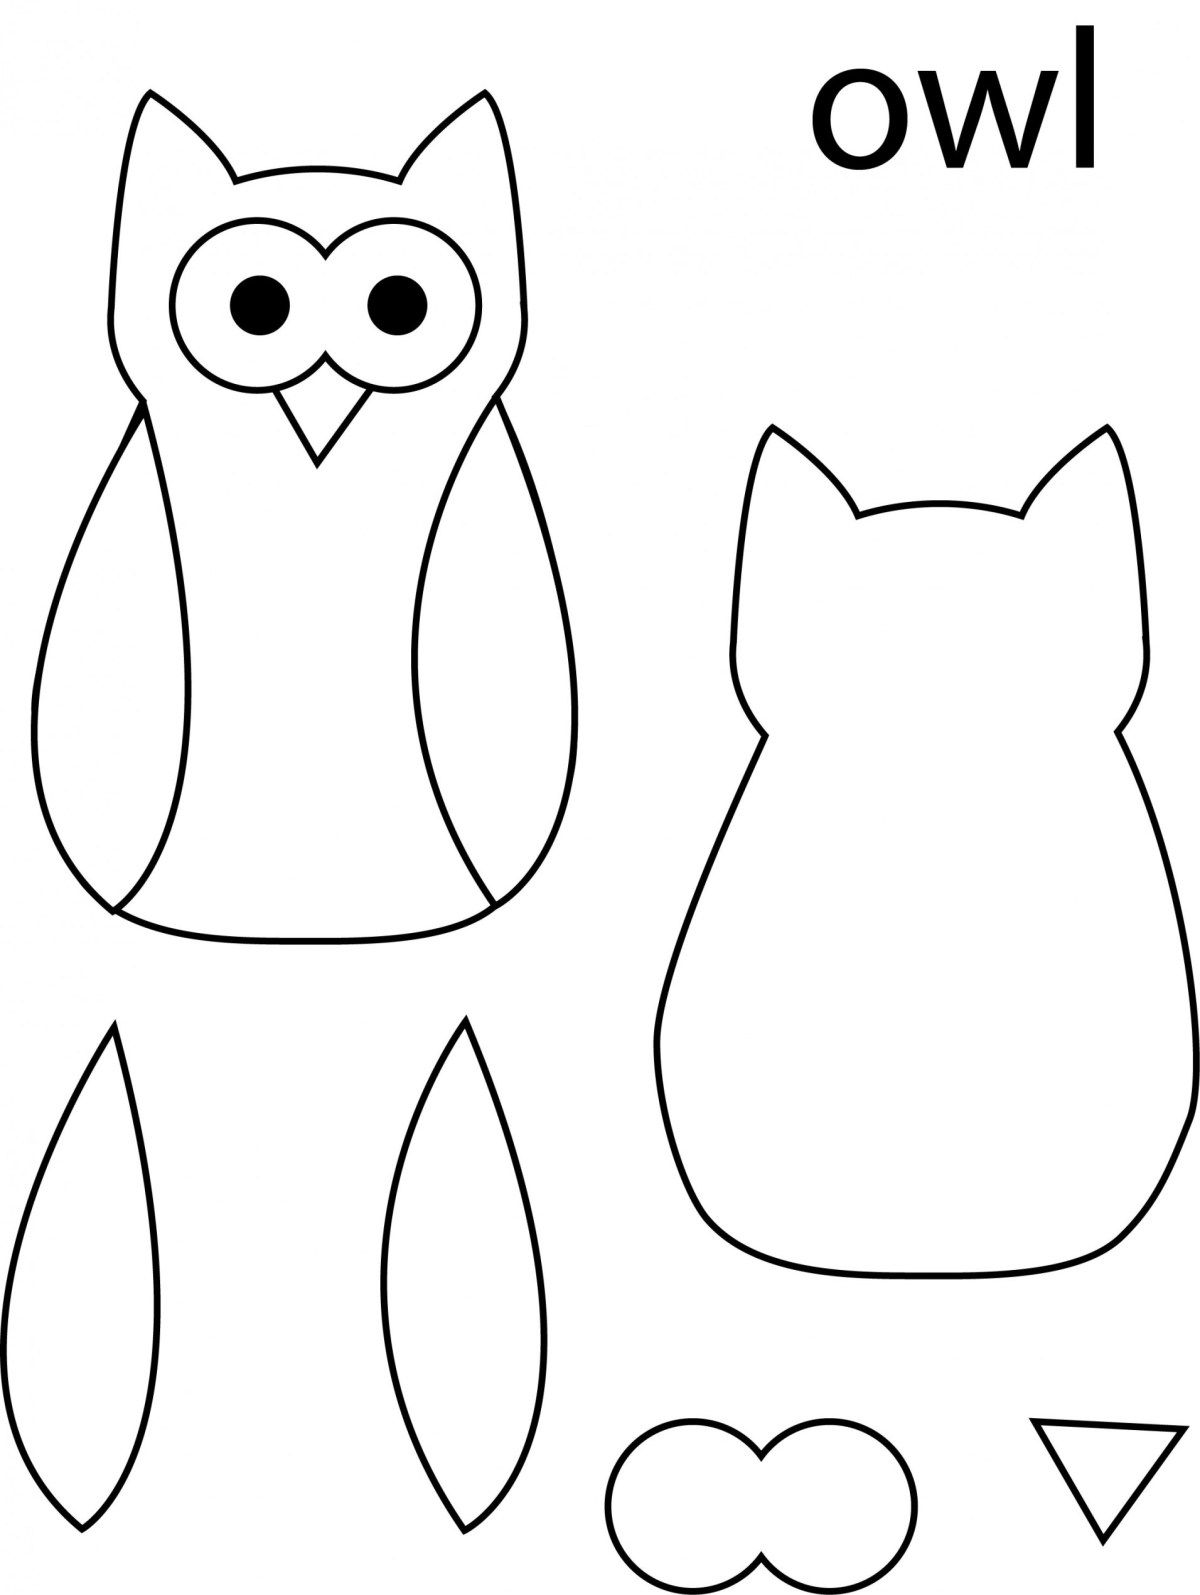 Owl Template Pre K Activities Owl Templates Owl Felt